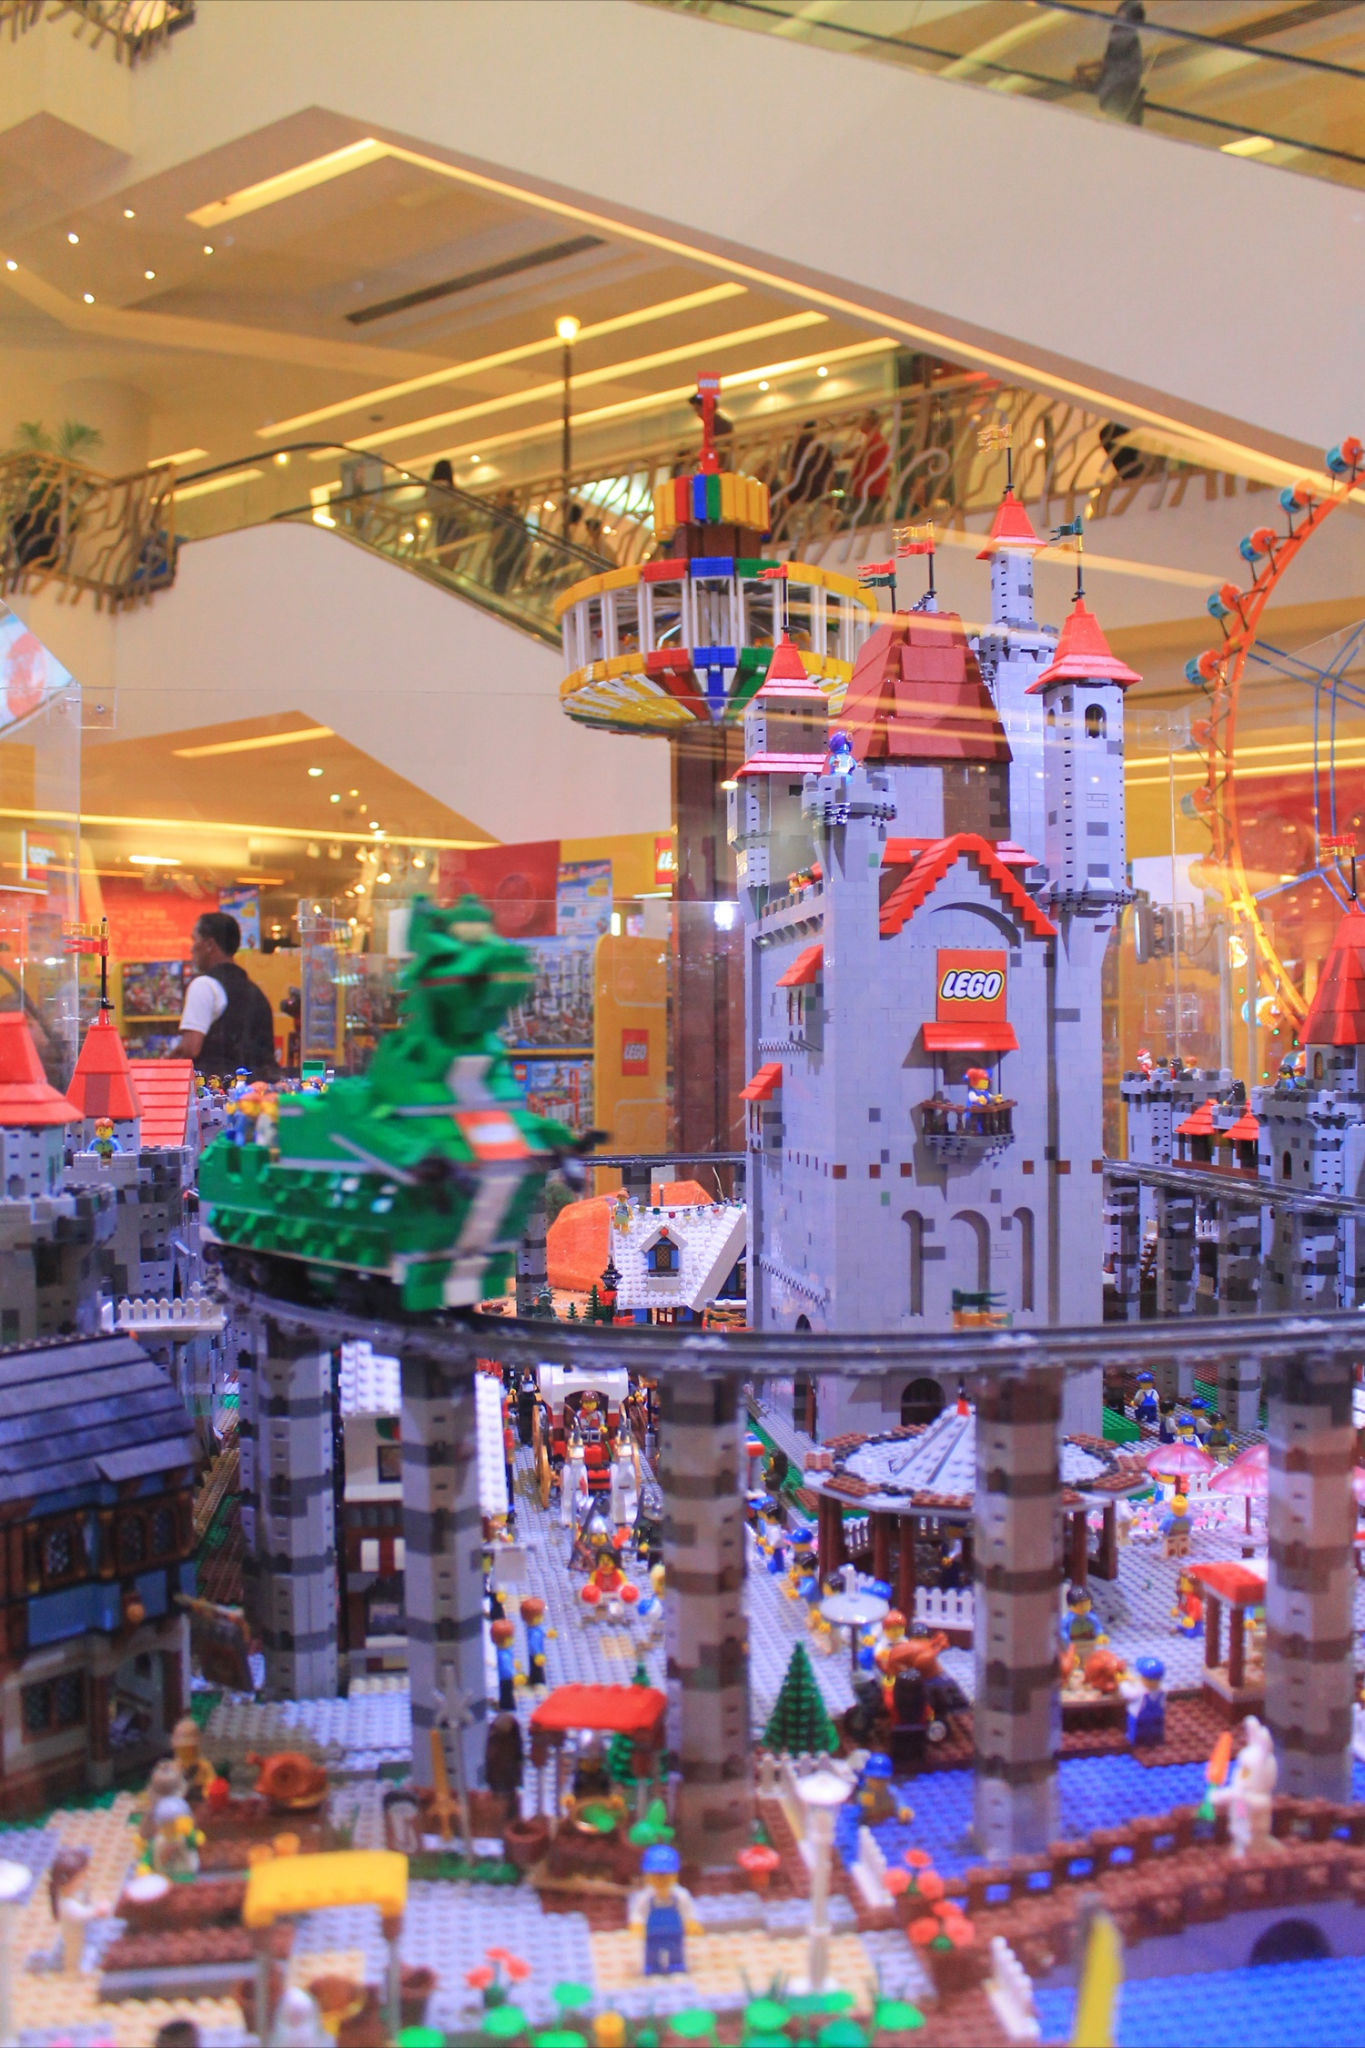 lego_children_day_thailand_2013_4.jpg